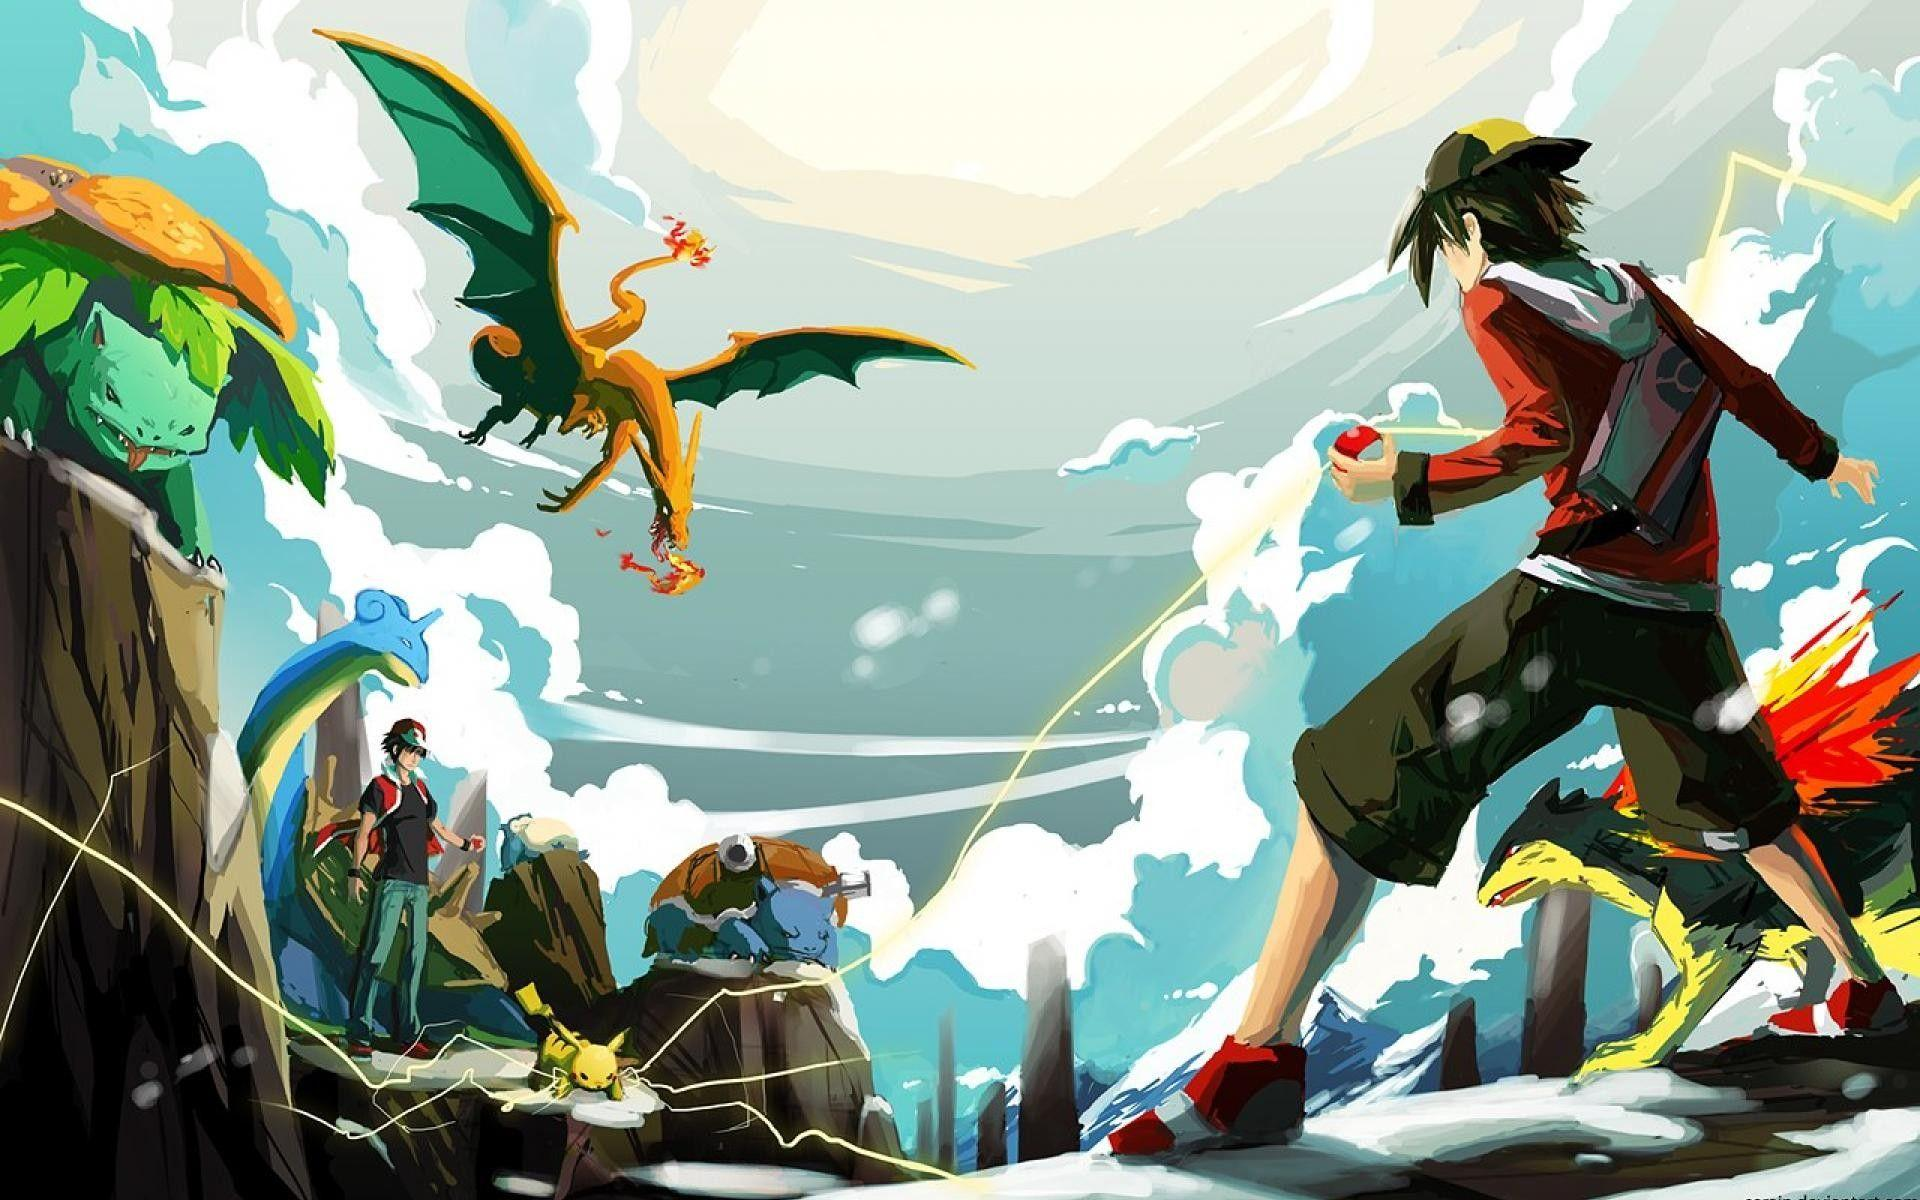 25+ HD Pokemon wallpapers ·① Download free cool wallpapers for